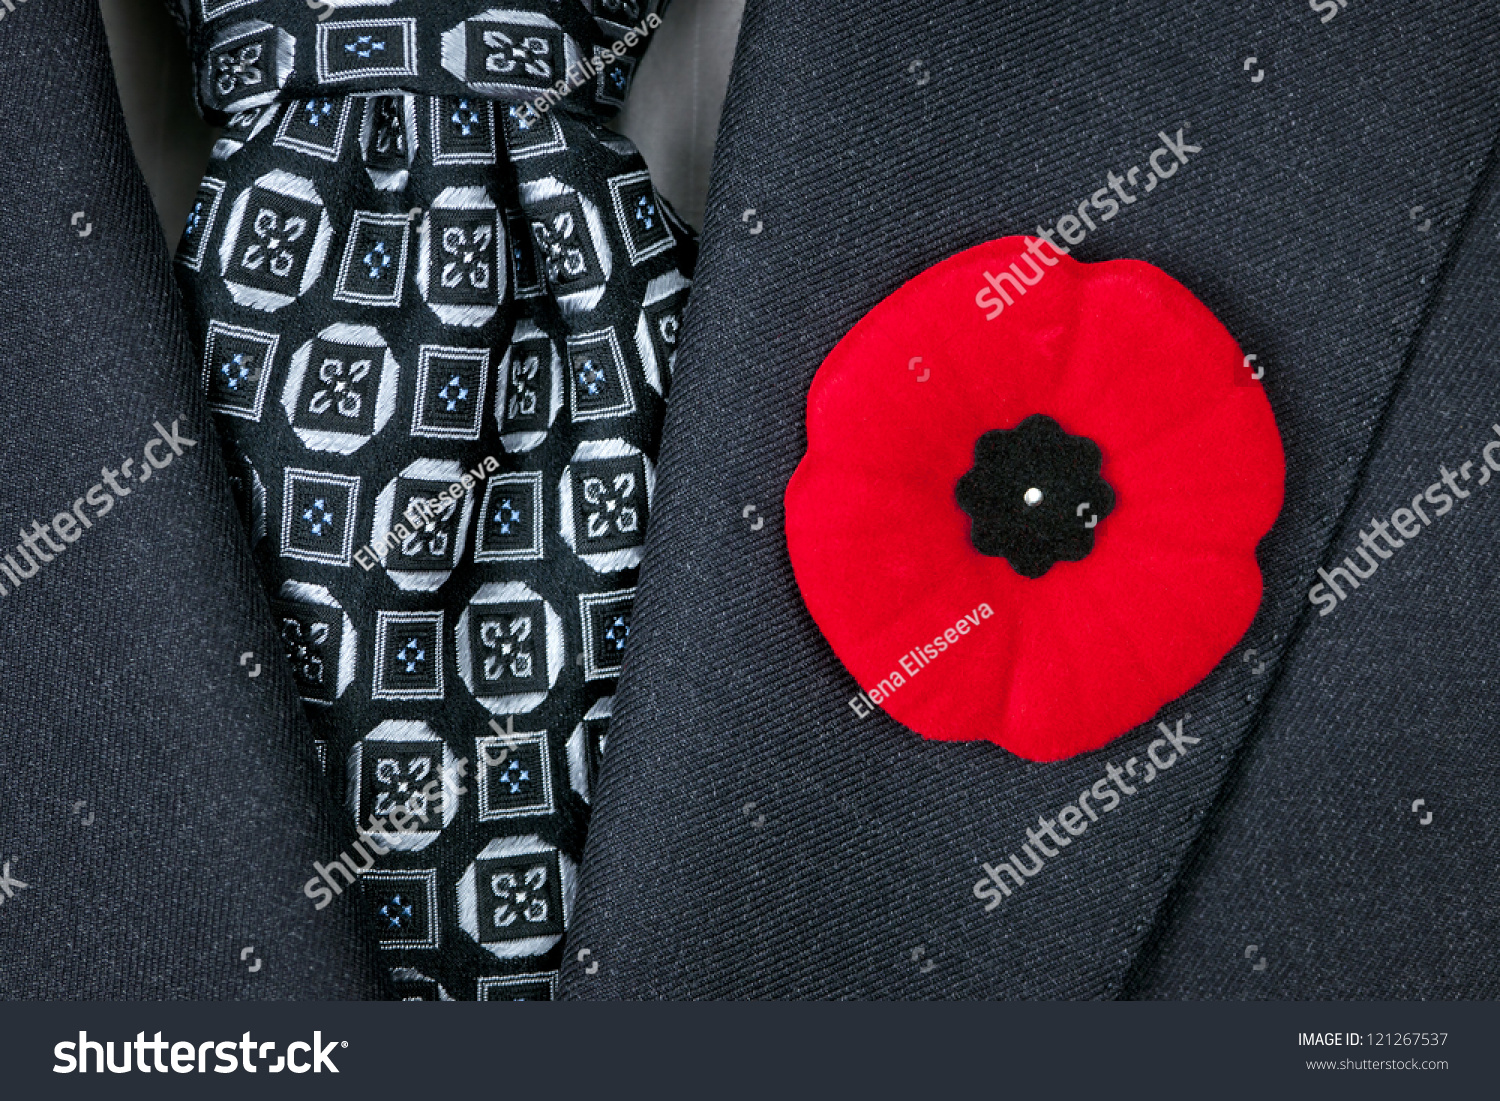 Red Poppy Lapel Pin On Suit Stock Photo Edit Now 121267537